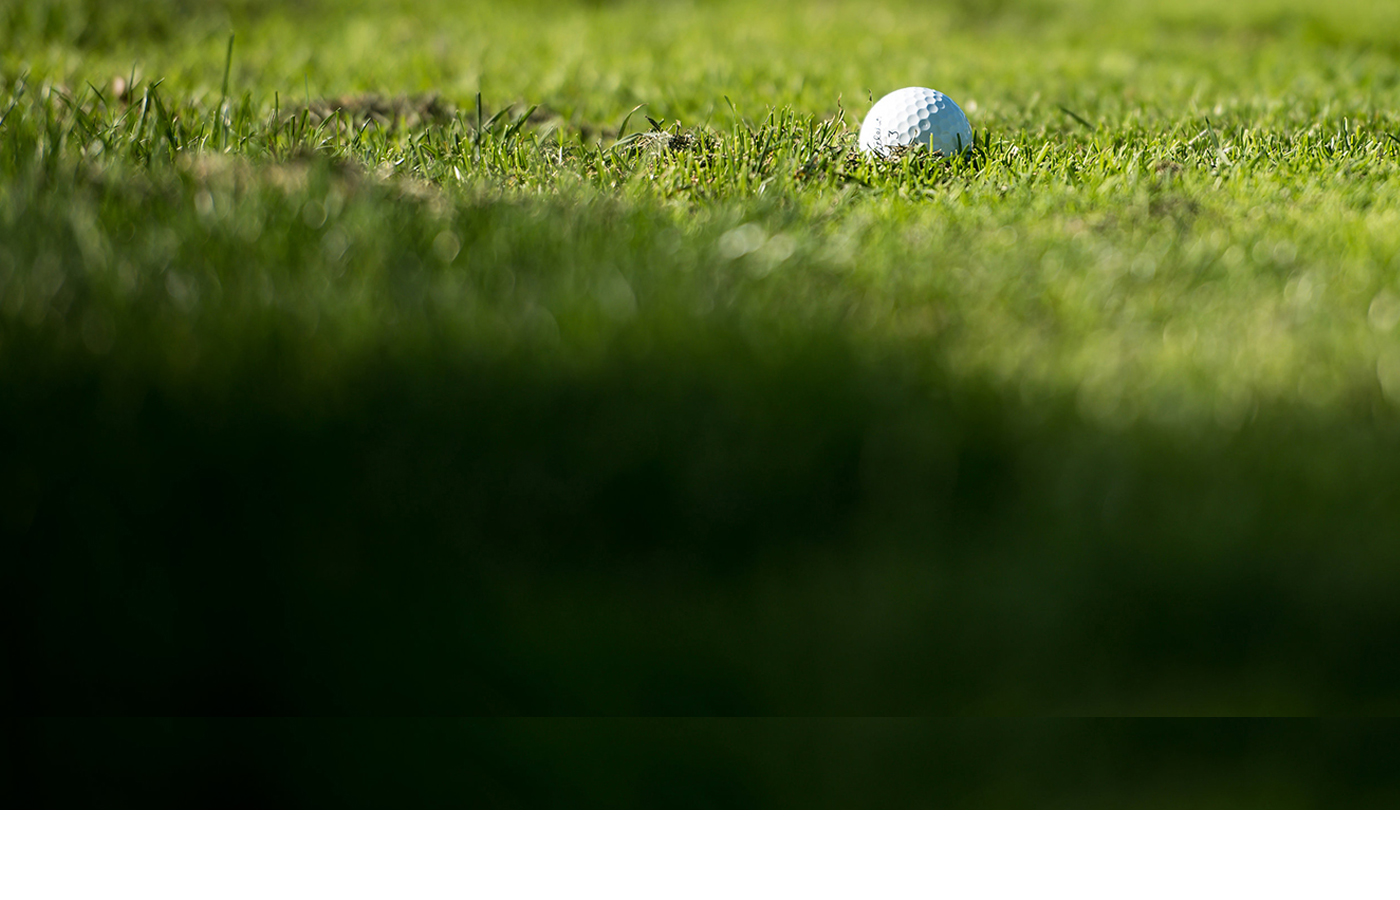 SMALL-CROPPED-Foundation-Stock-Golf-ParTee2